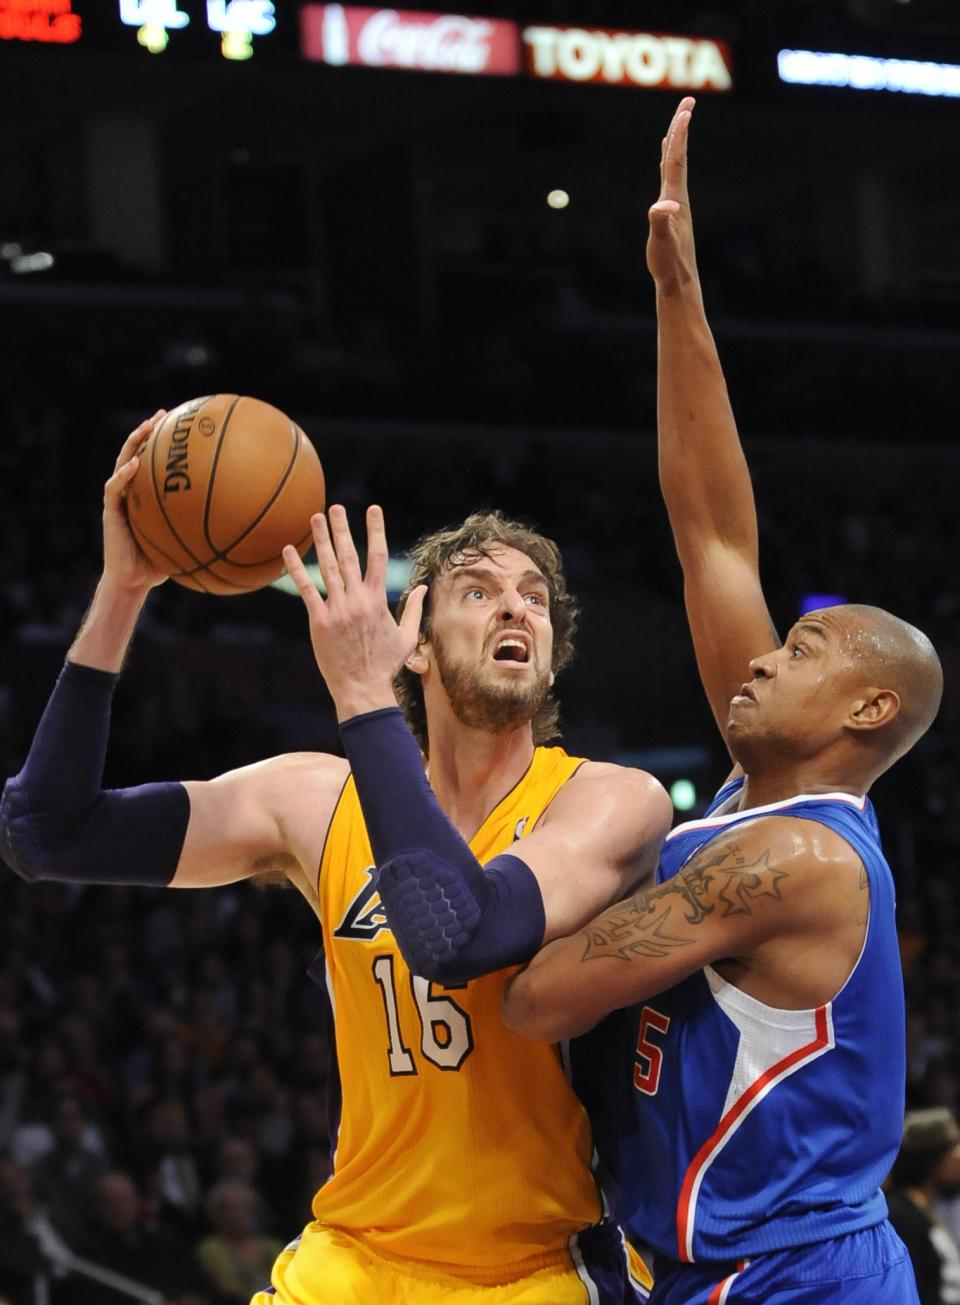 Los Angeles Lakers forward Pau Gasol (16), of Spain, drives on Los Angeles Clippers forward Caron Butler (5) as he goes to the basket in the first half of an NBA basketball game, Friday, Nov. 2, 2012, in Los Angeles.(AP Photo/Gus Ruelas)